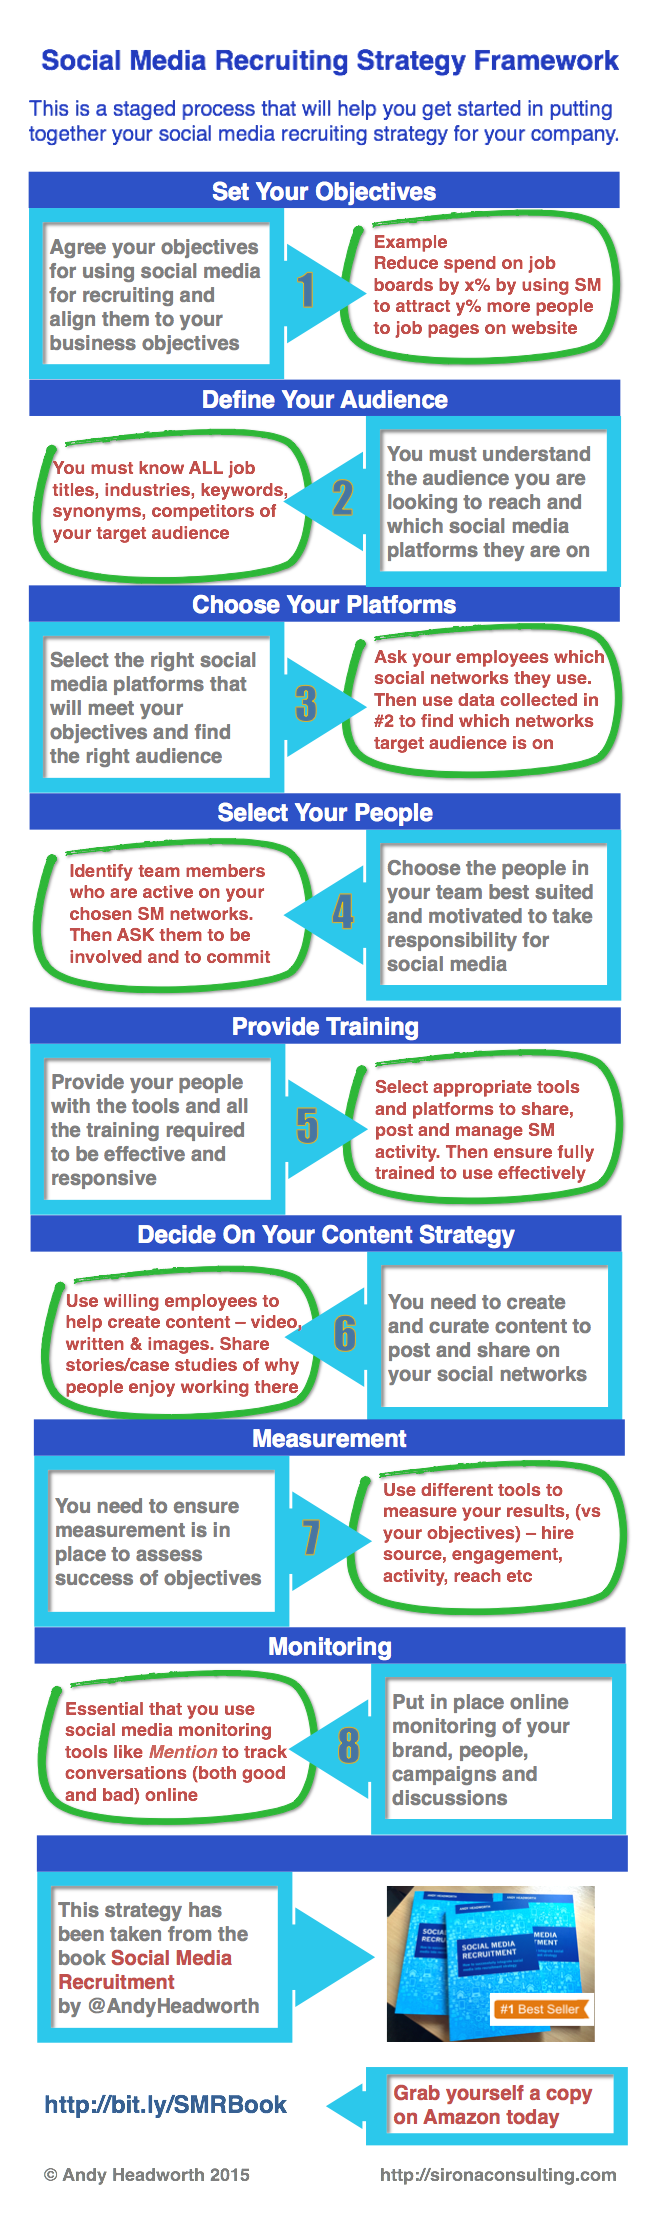 Social Media Recruitment Strategy Framework Infographic  Things